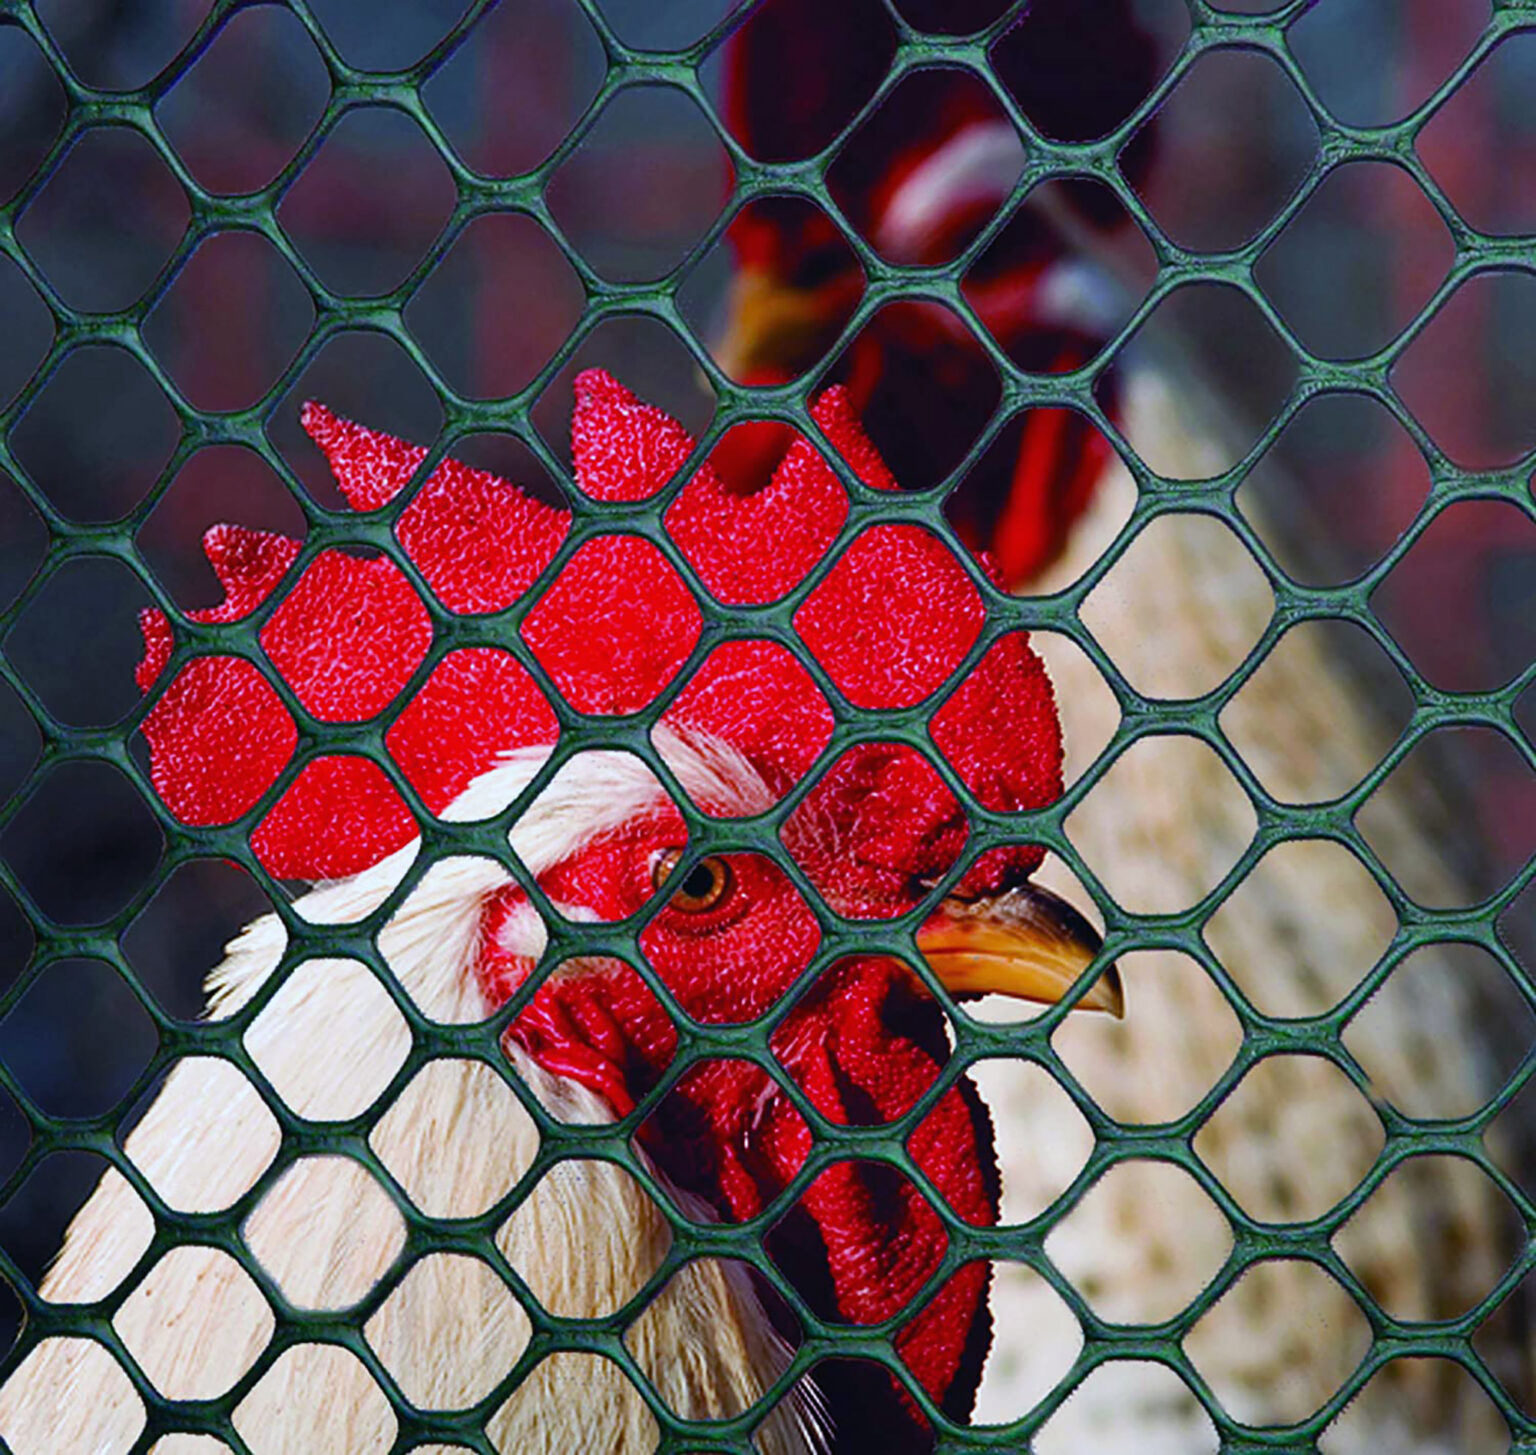 Poultry Fence review